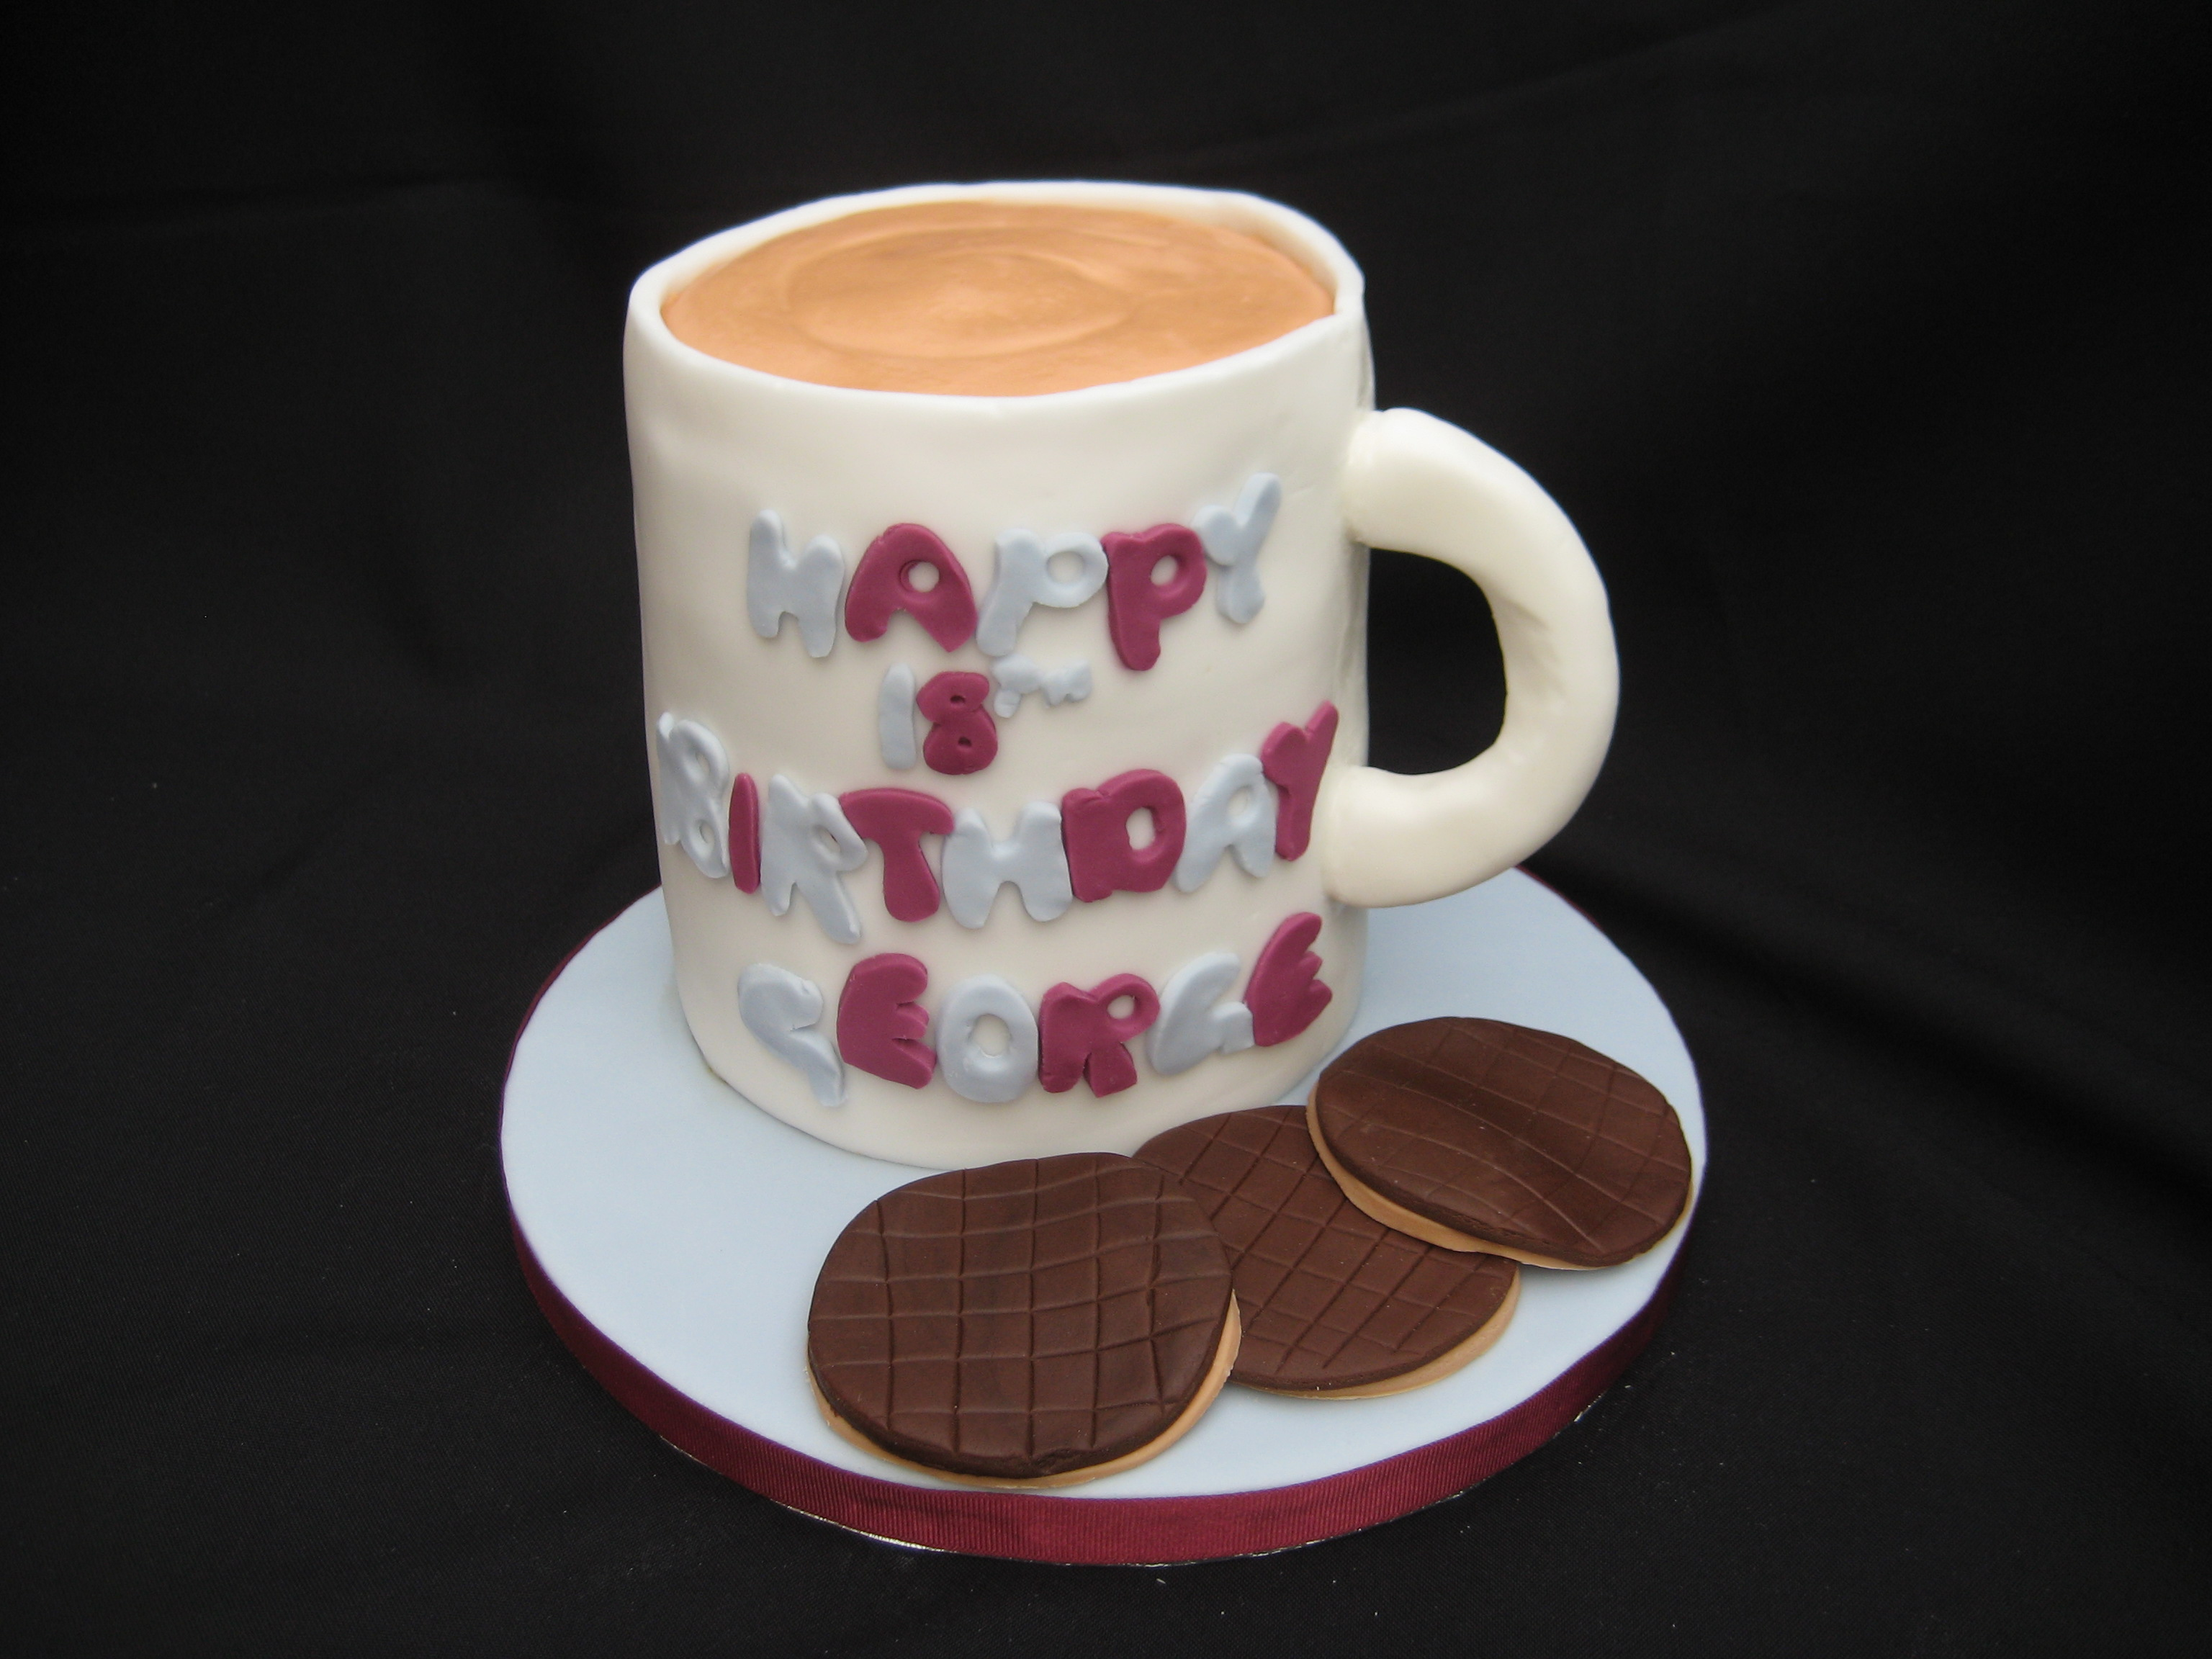 Mug Of Tea Birthday Cake